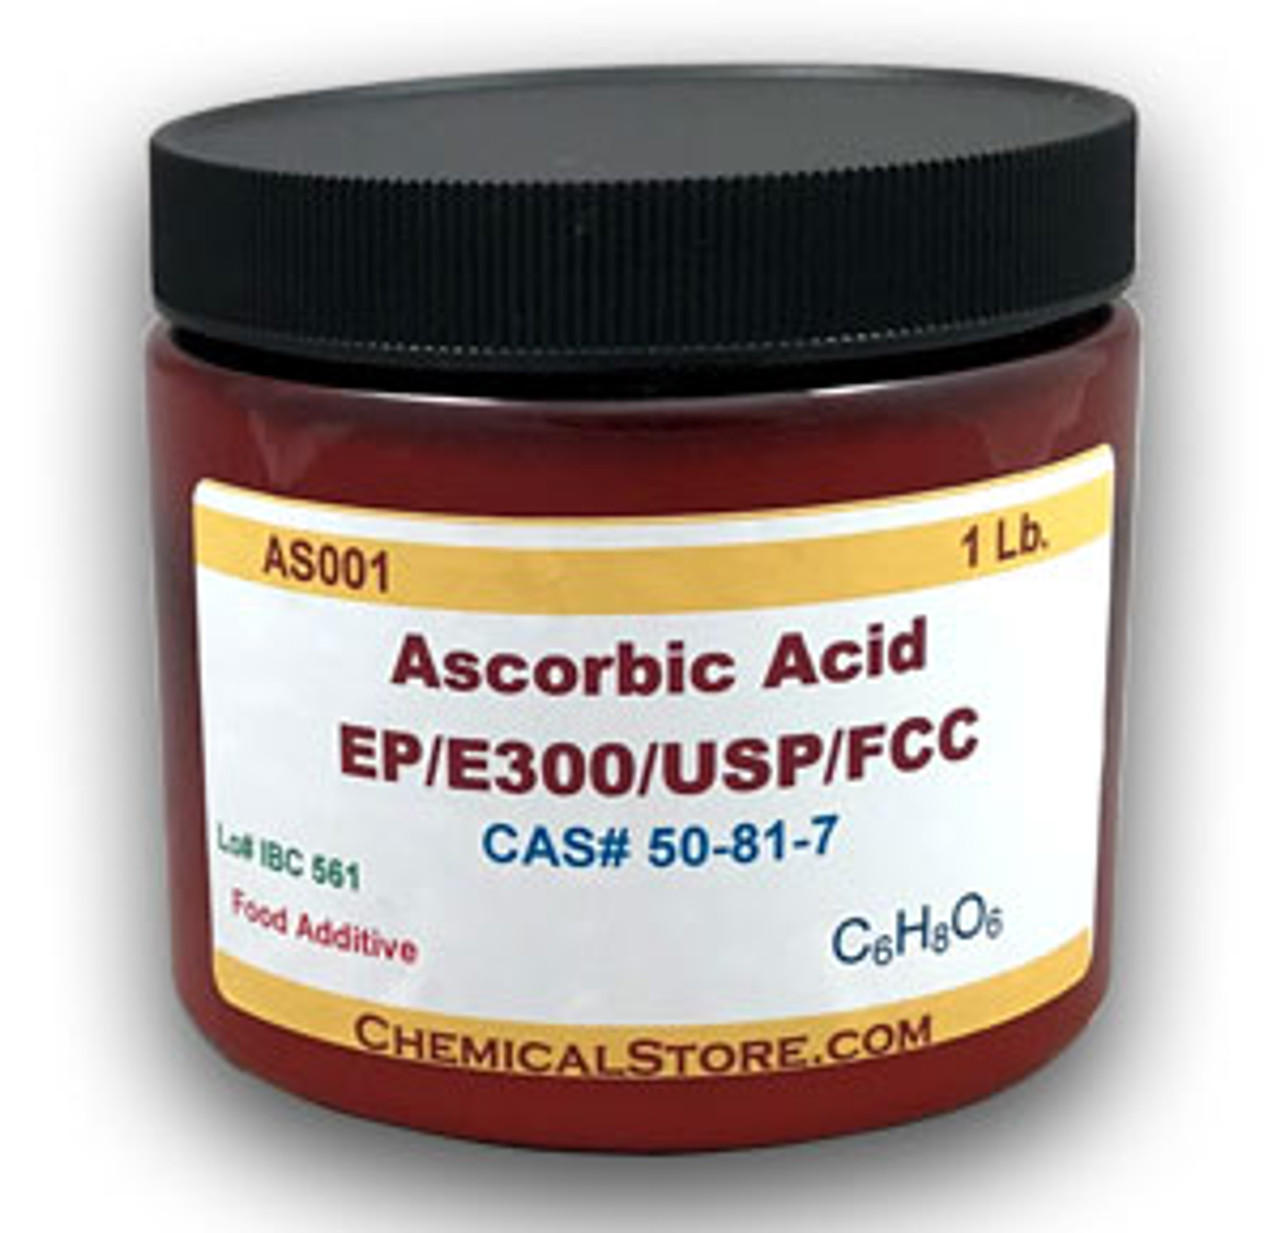 Ascorbic acid food grade and pharmaceutical grade for professional and laboratory use.